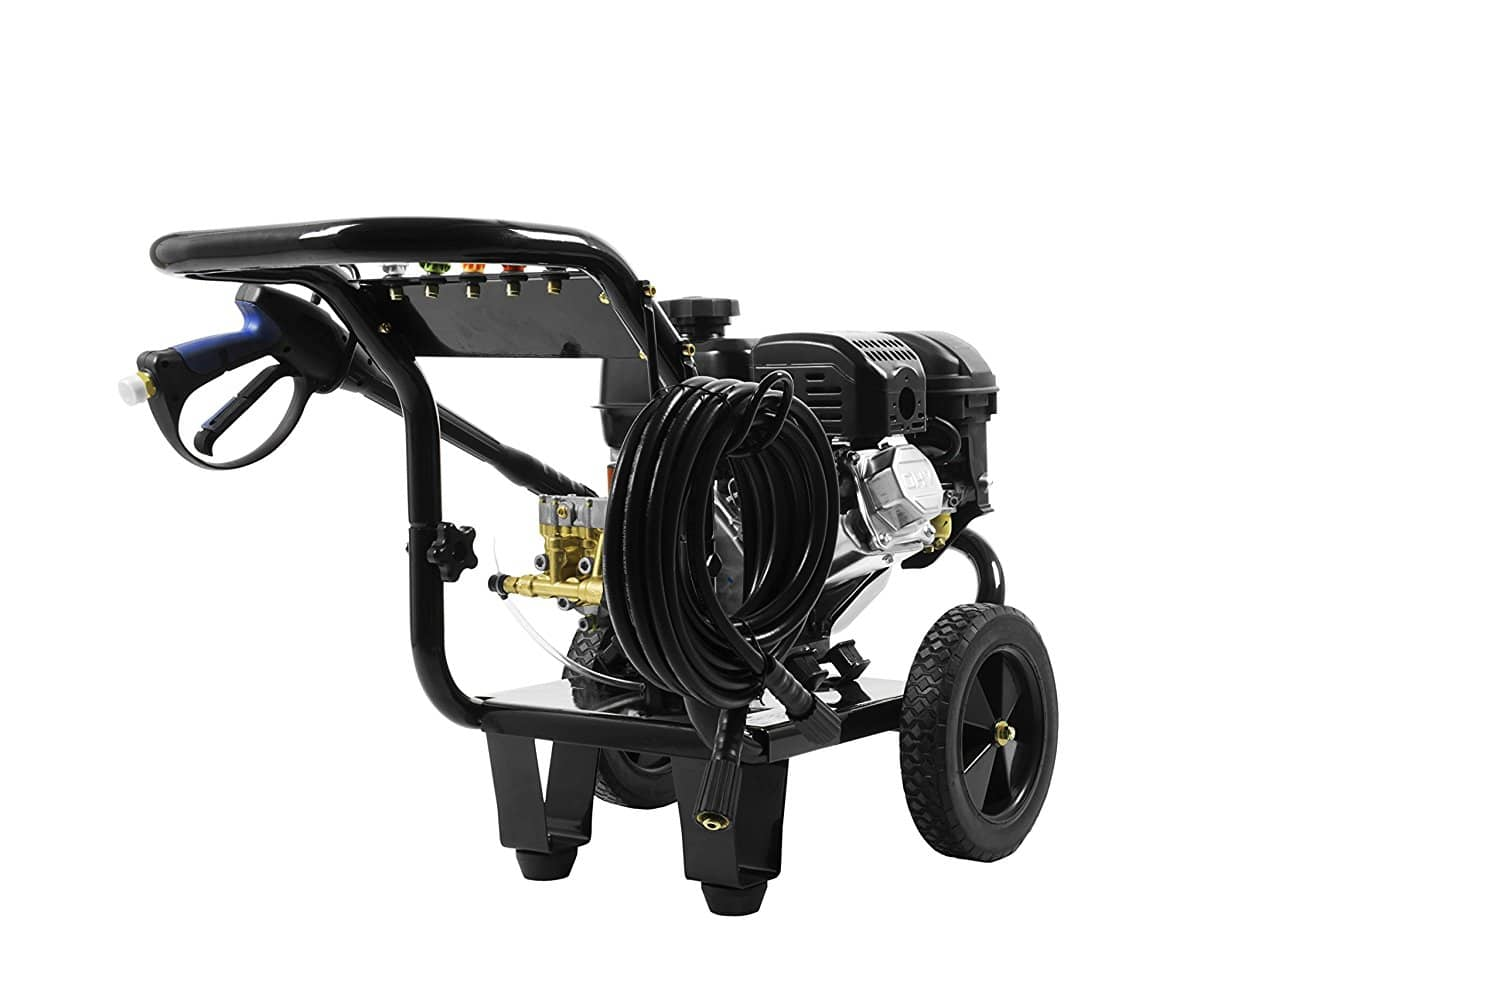 Excell EPW2123100 3100 PSI 2.8 GPM 212CC Gas Powered Pressure Washer $238.00